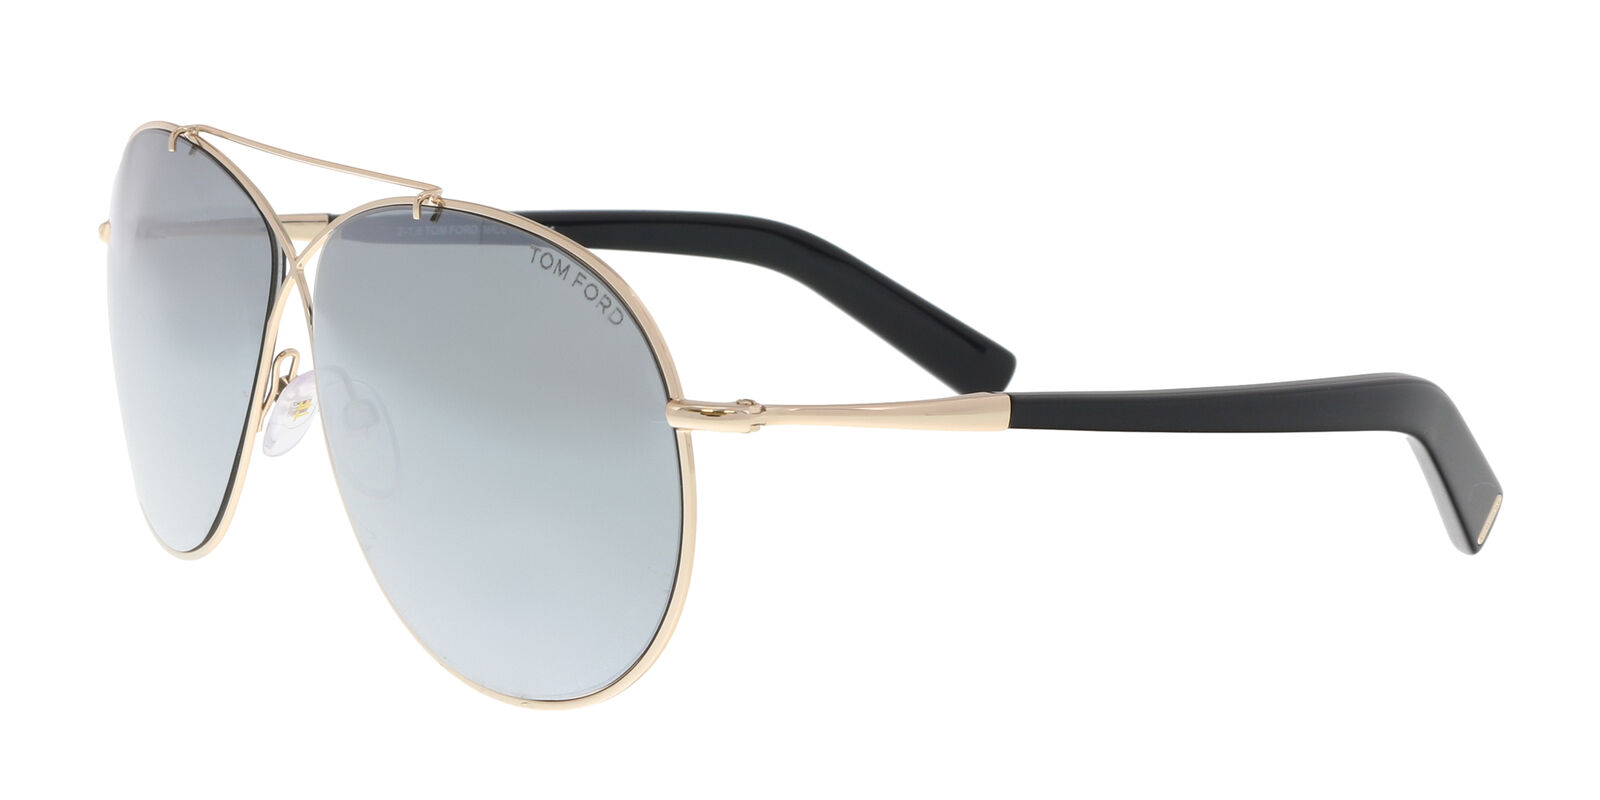 7f1fa45d03d Tom Ford Eva Aviator Sunglasses in Shiny Rose Gold Green Mirror ...